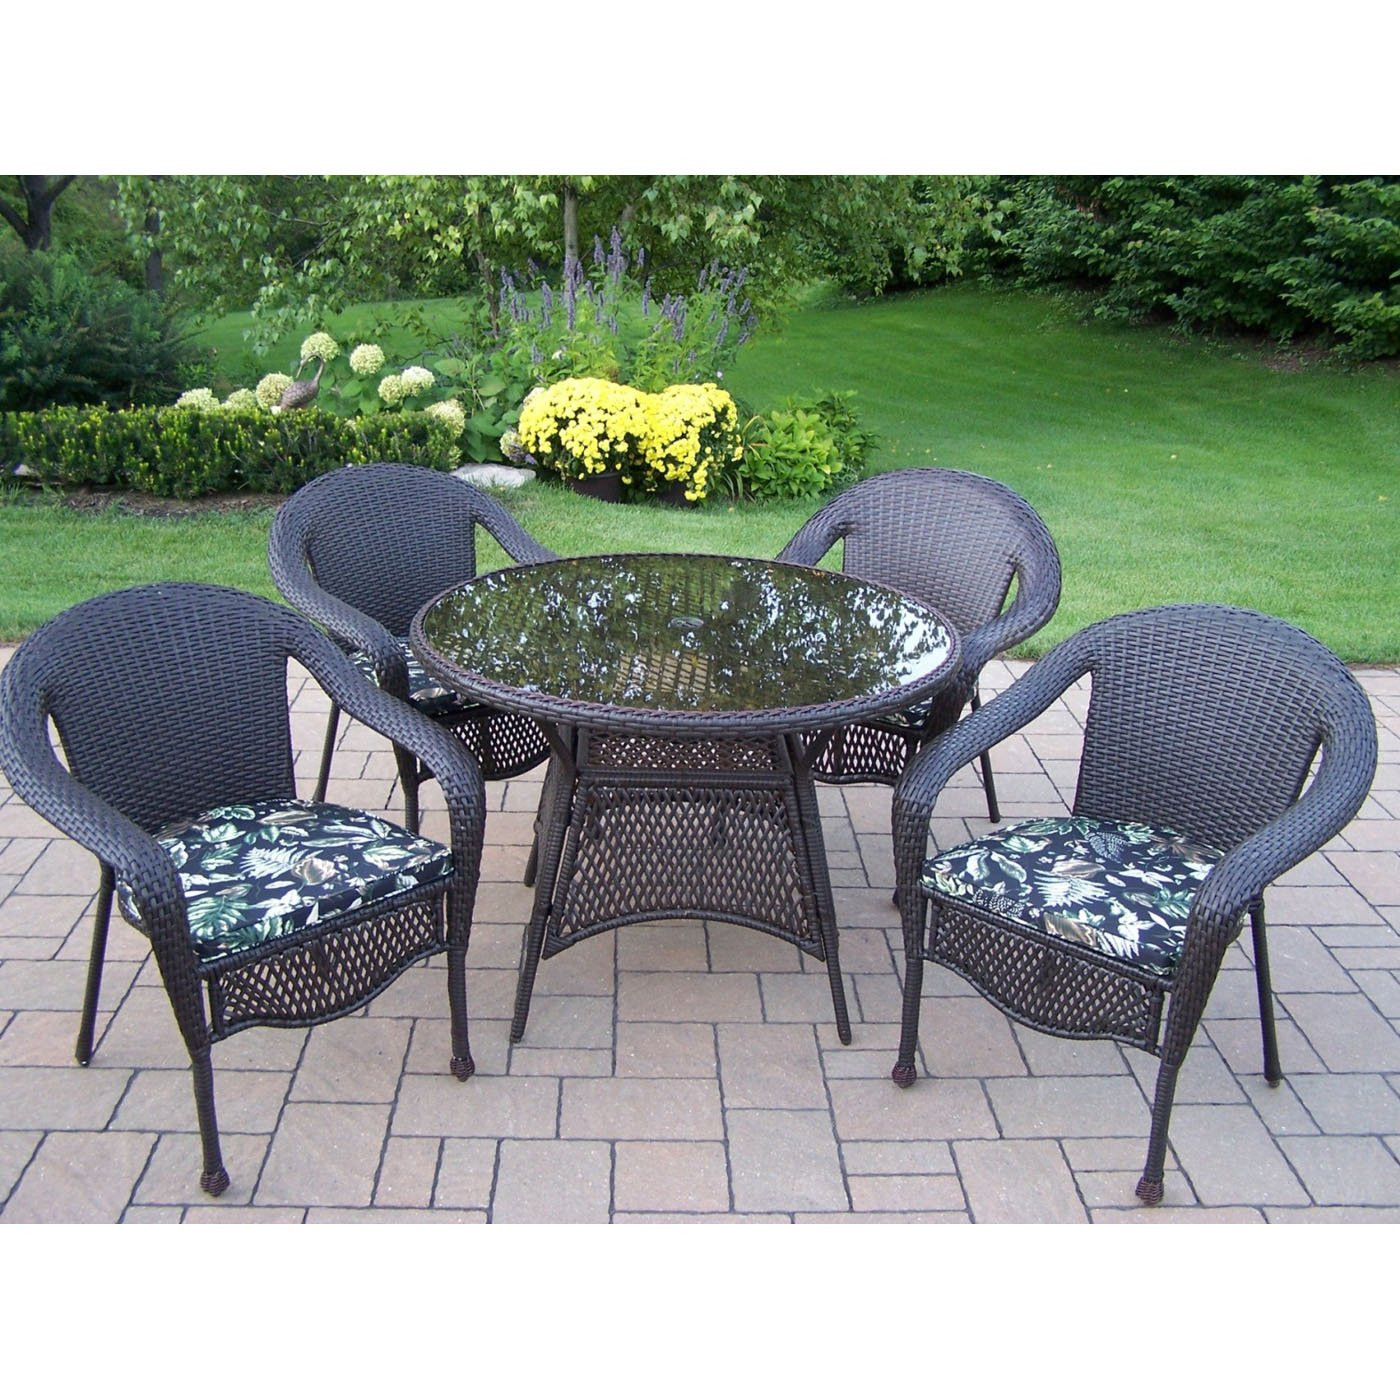 Best ideas about Outdoor Patio Dining Sets . Save or Pin Oakland Living 9 CF CU Elite Resin Wicker 5 Piece Now.